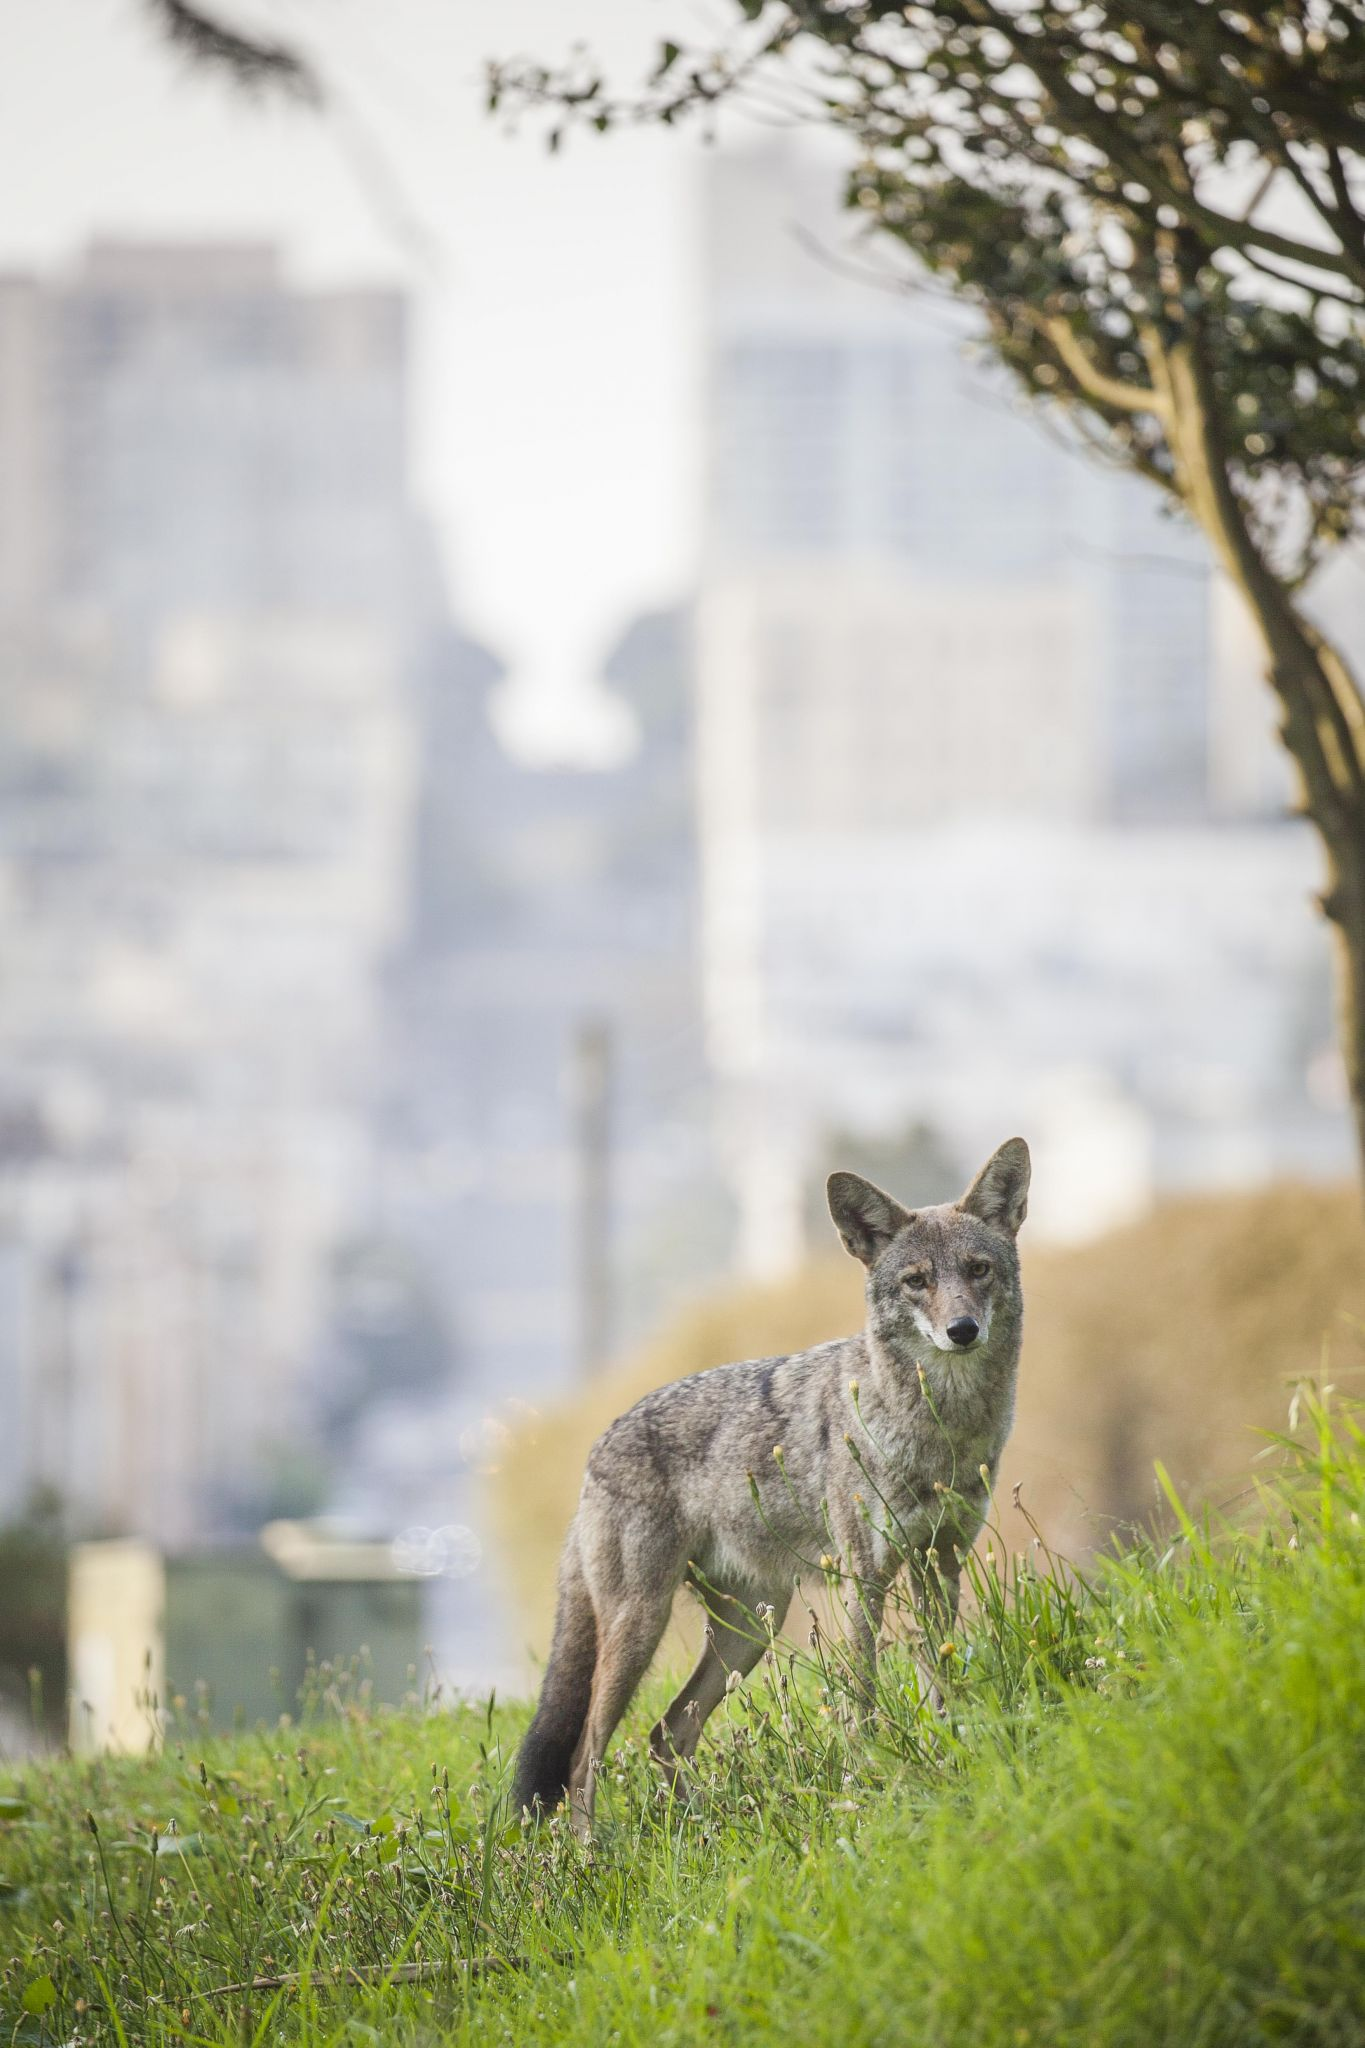 How to draw a coyote step 2 apps directories - Sf Resident Captures Coyote S Morning Stroll Through His Neighborhood Sfgate